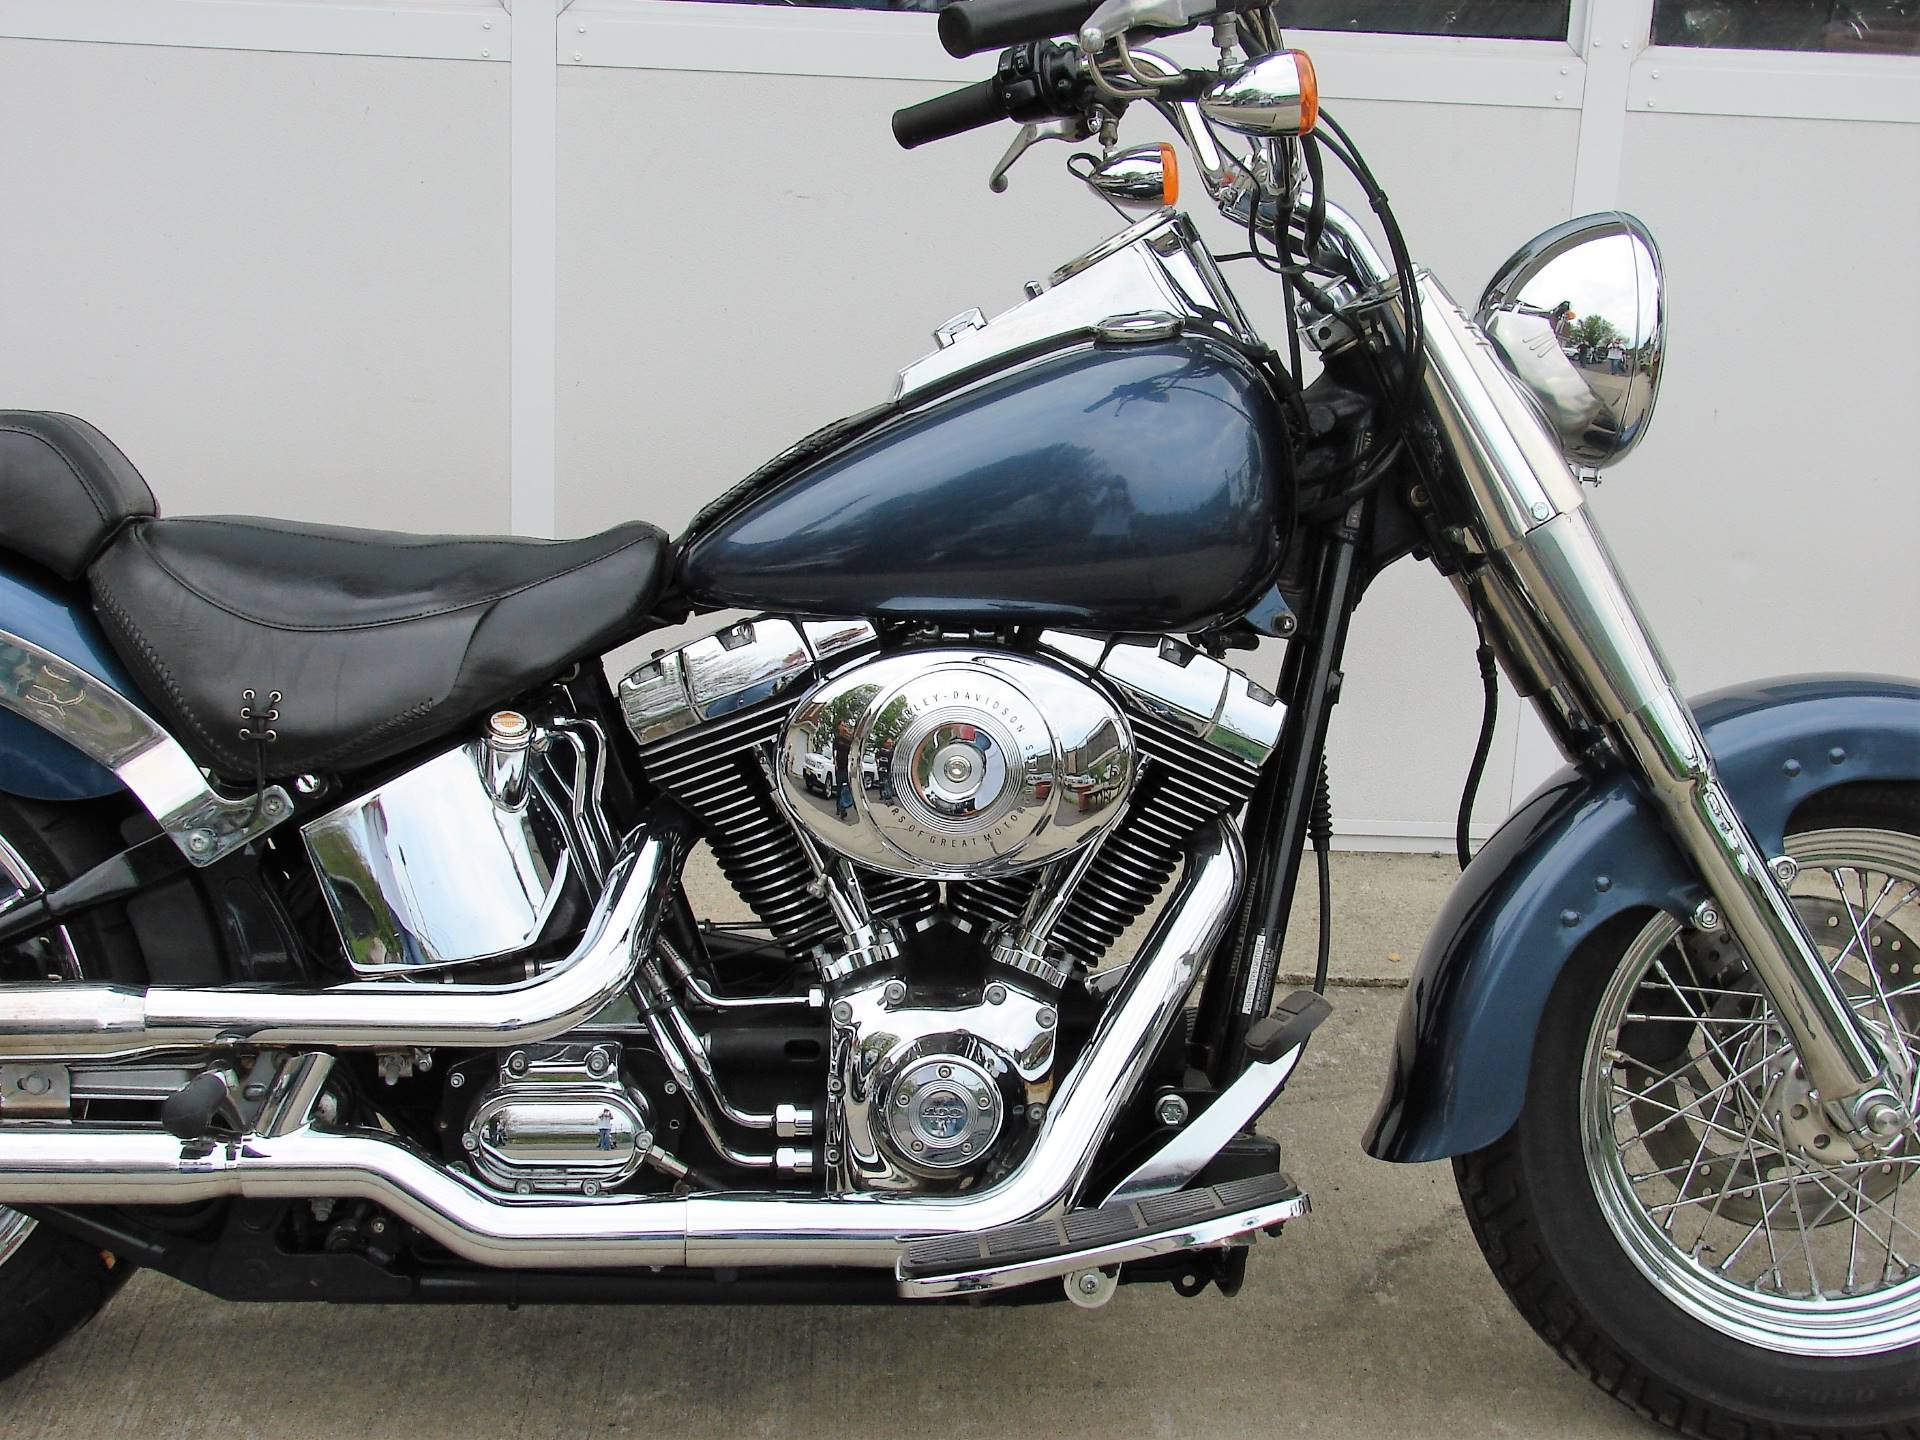 2003 Harley-Davidson Heritage Softail / Fatboy in Williamstown, New Jersey - Photo 2